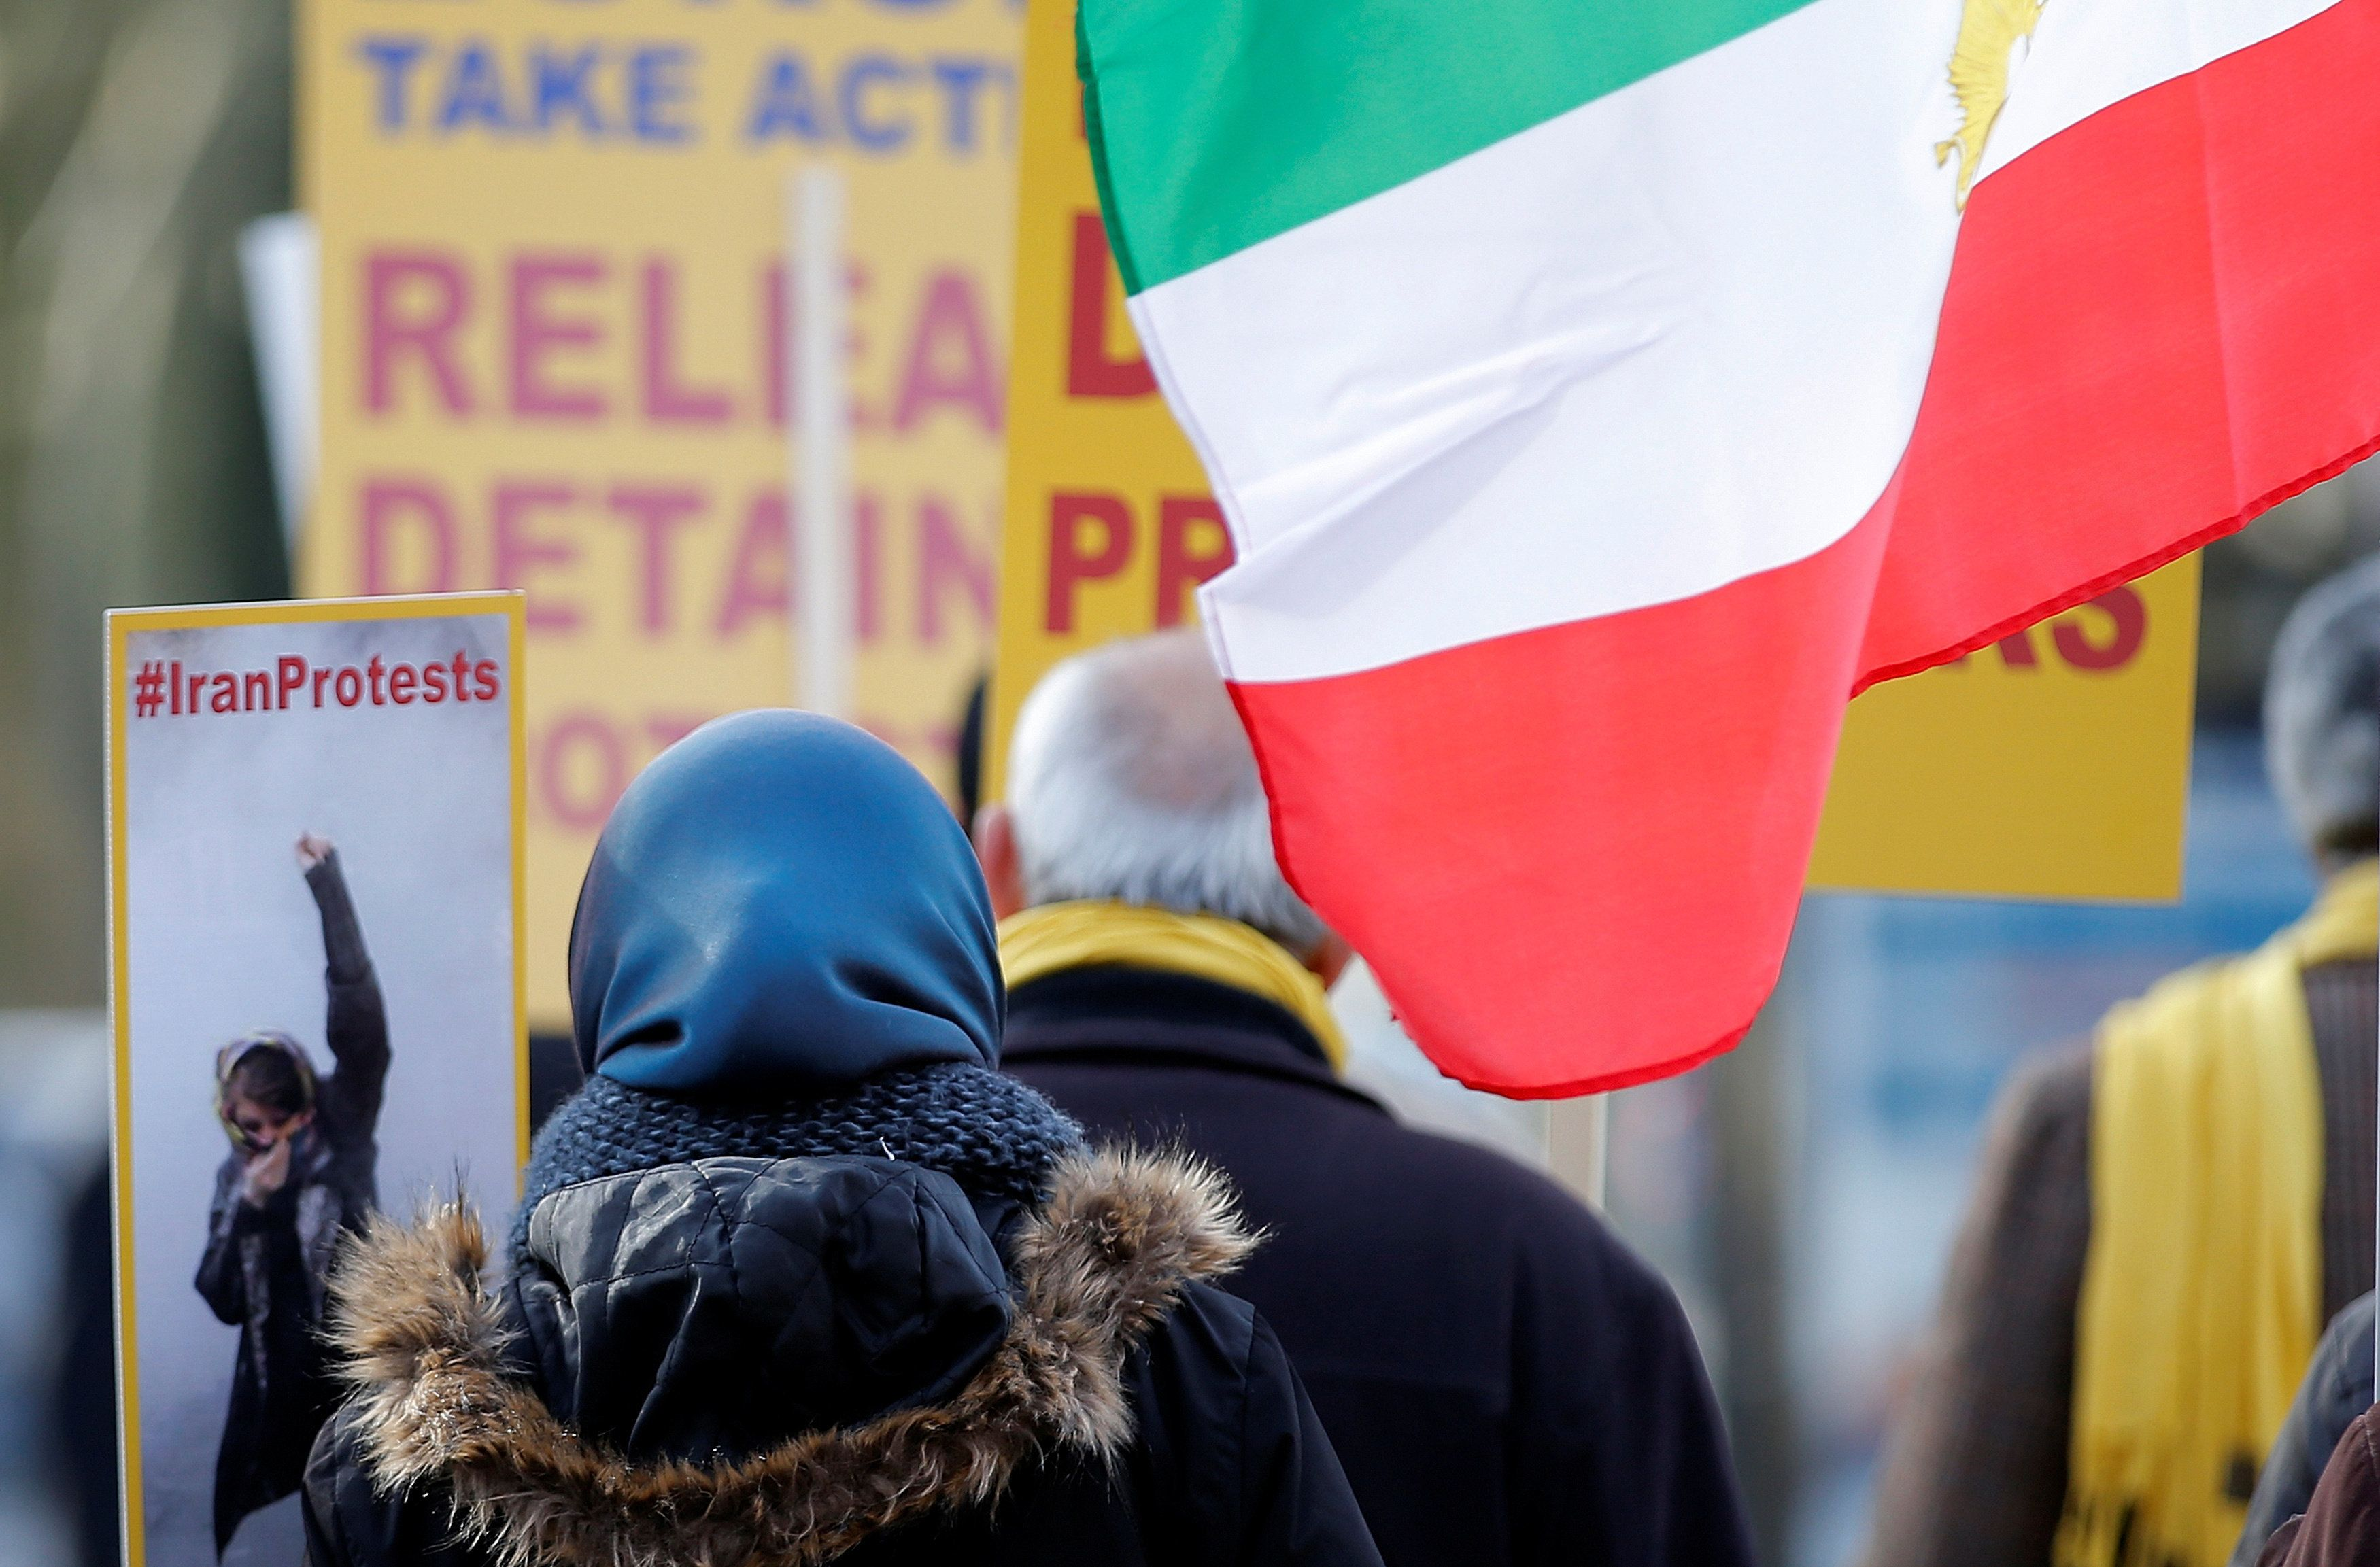 Demonstrators take part in a protest against the situation in Iran in front of the Council of Europe in Strasbourg, France, January 24, 2018. REUTERS/Vincent Kessler